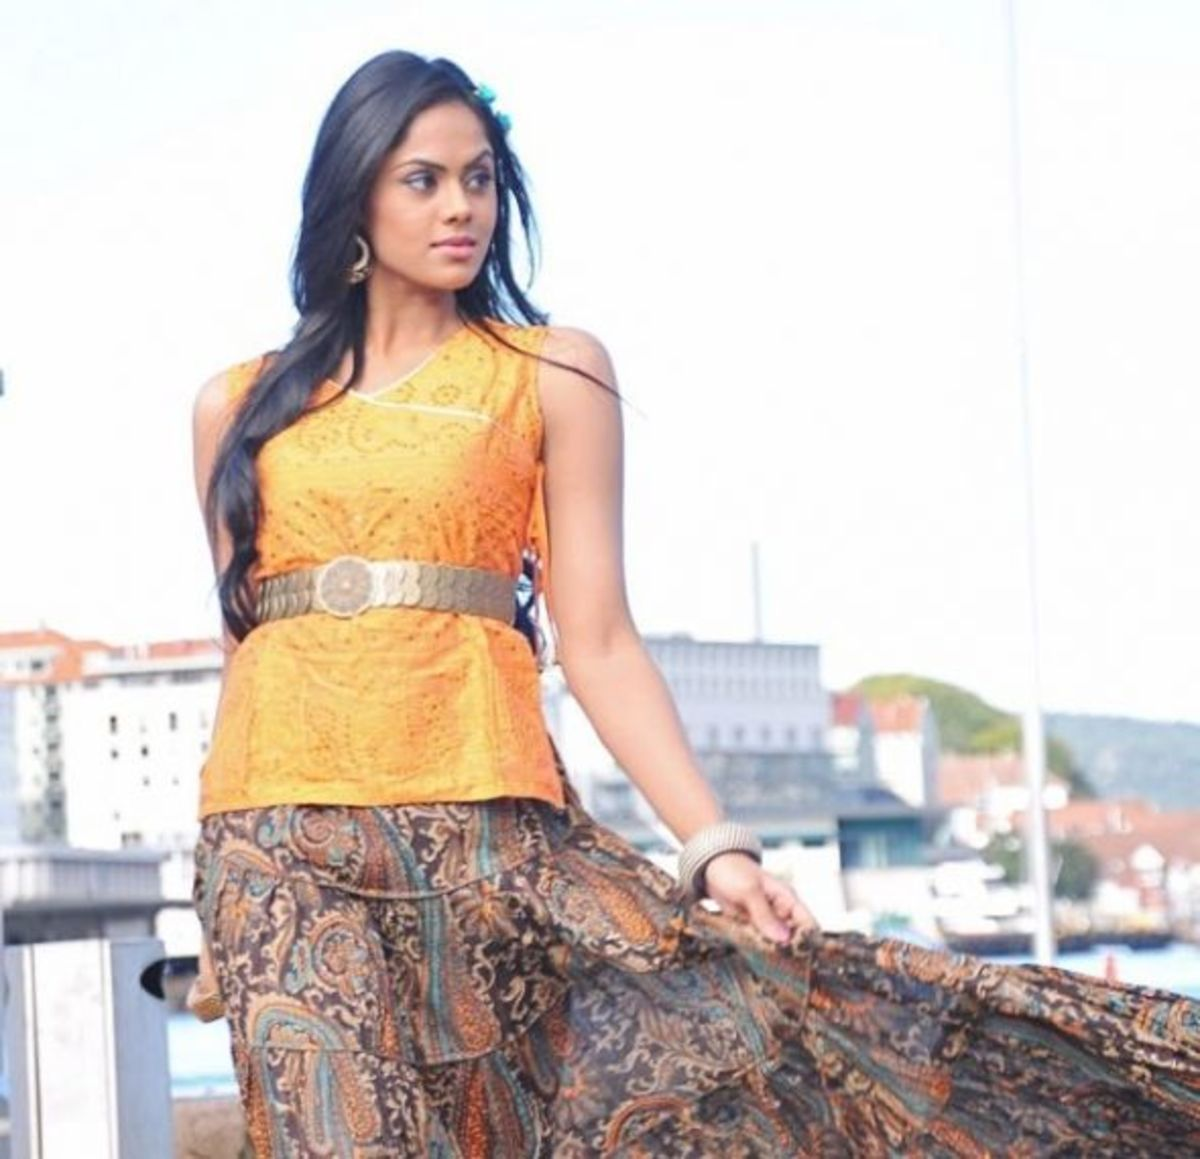 Karthika Nair in KO Film